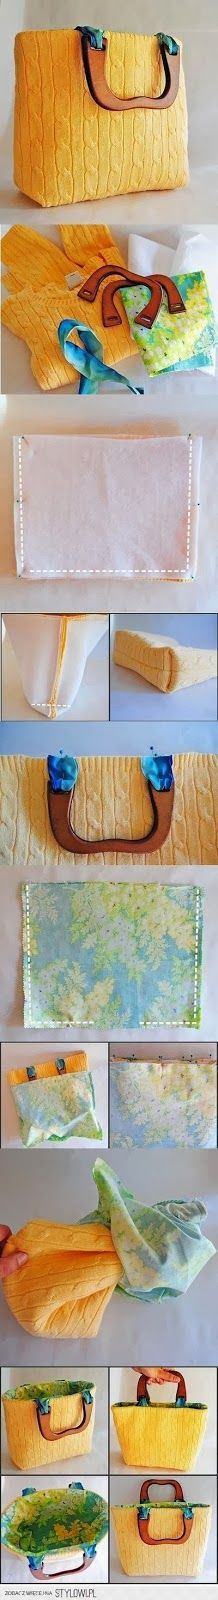 Make your own bag